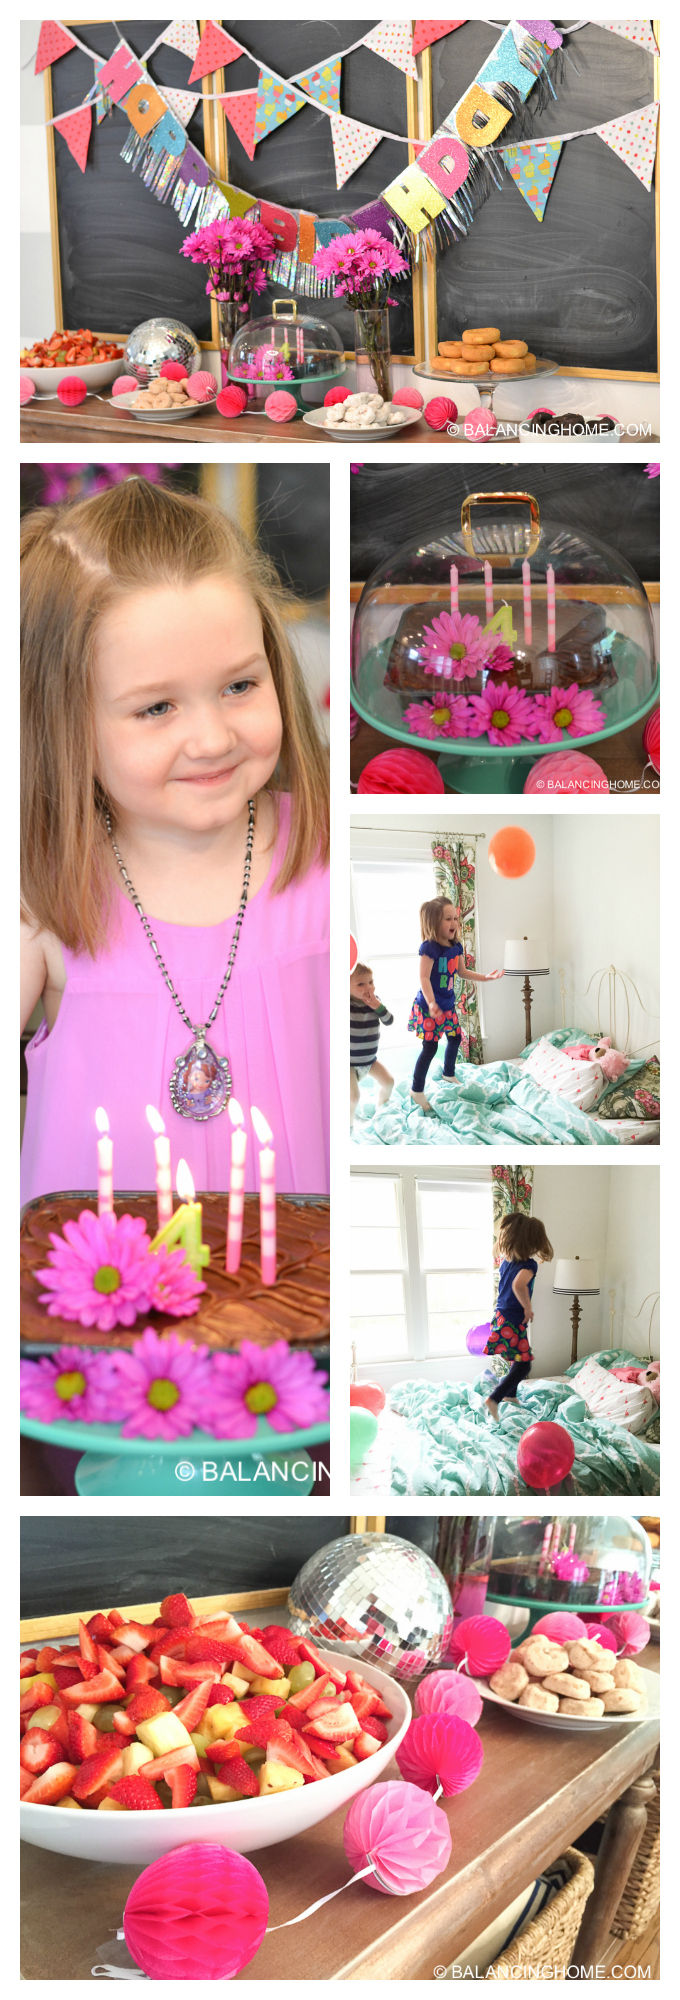 simple-quick-last-minute-birthday-breakfast-party